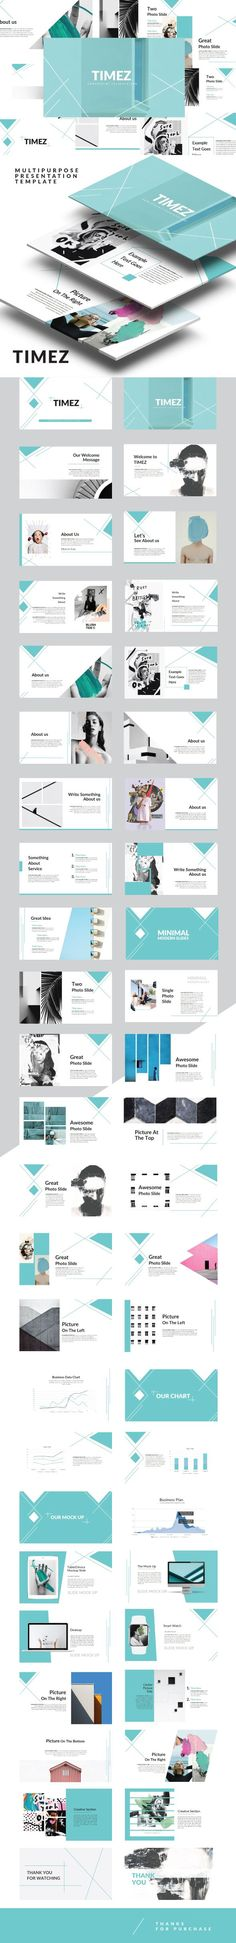 Timez Multipurpose Presentation Template